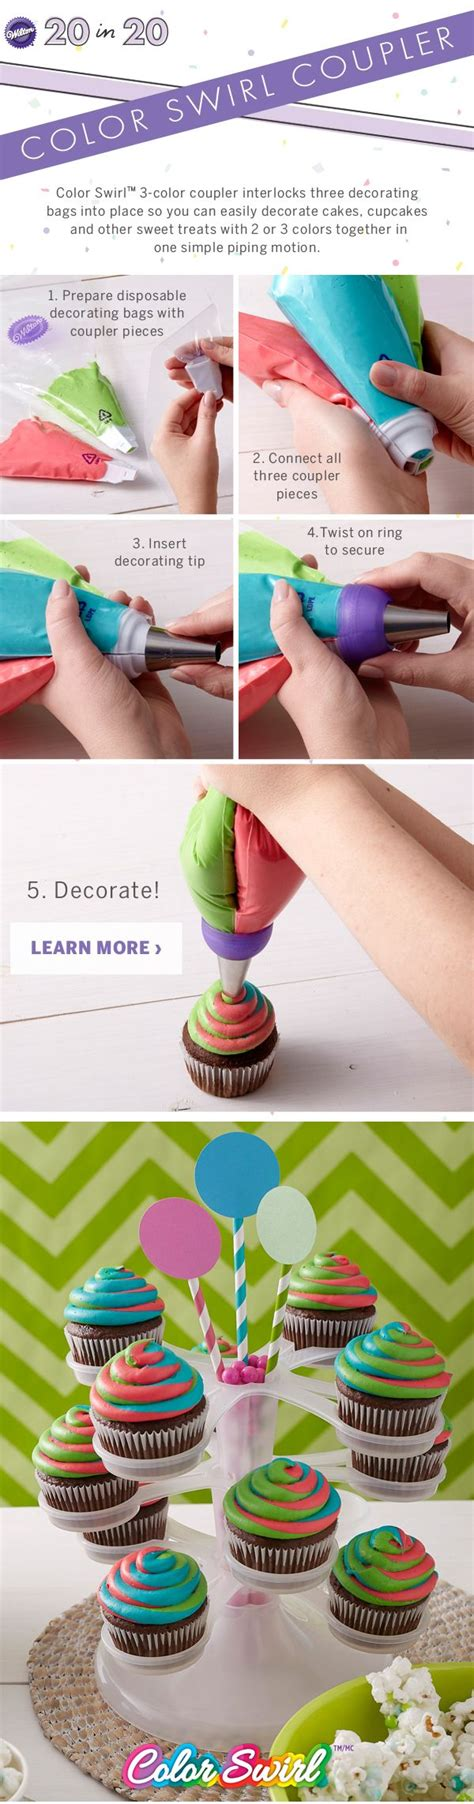 links to love cake decorating tips and tricks momof6 best 25 cool cupcakes ideas on pinterest succulent